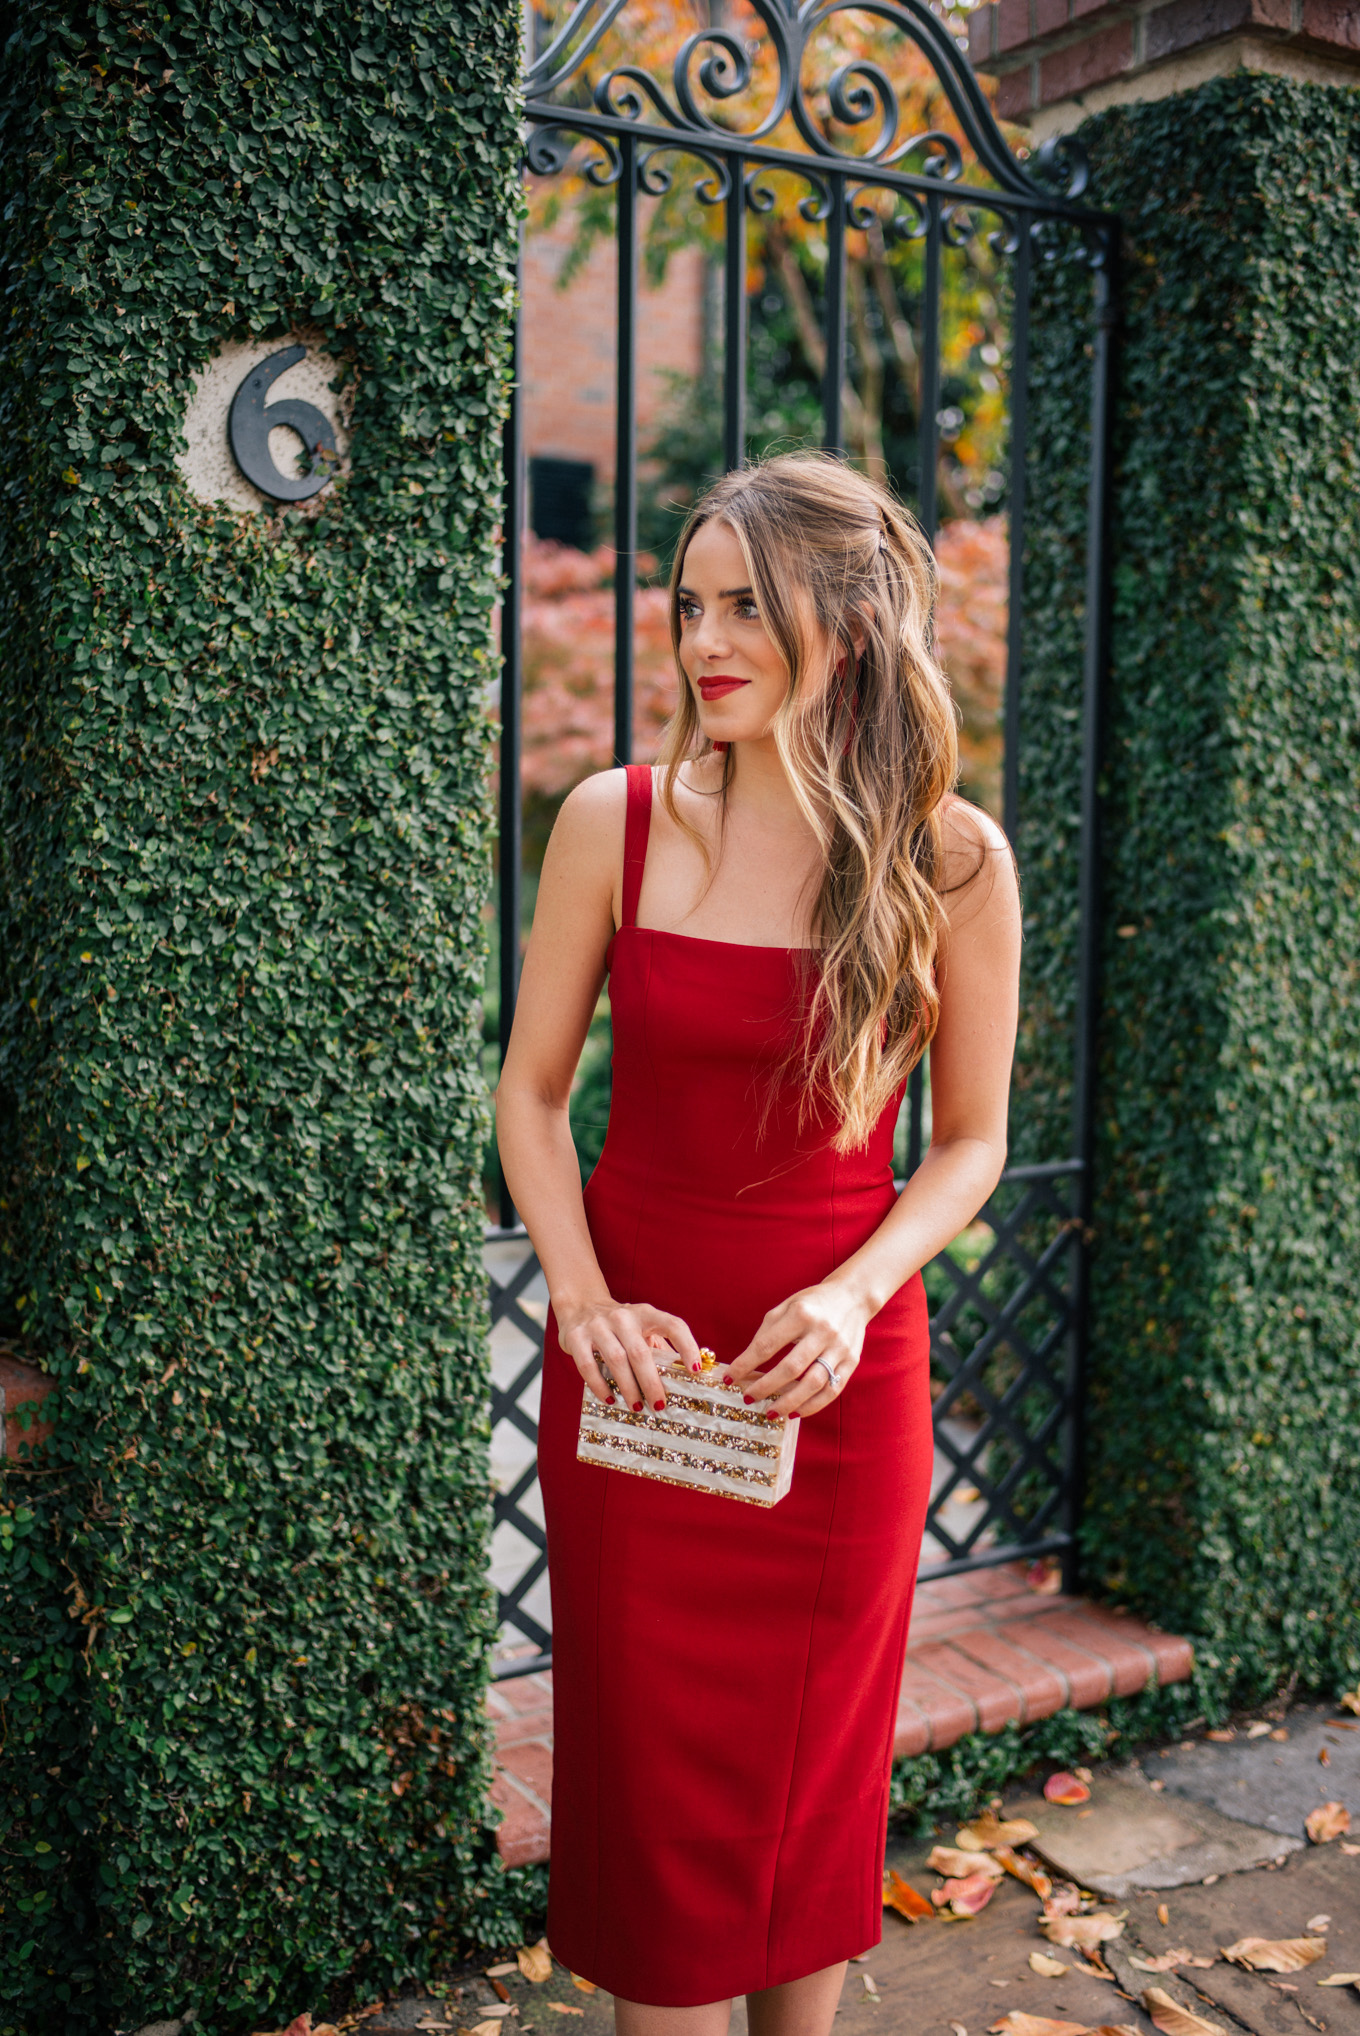 gmg-red-dress-holiday-1000216